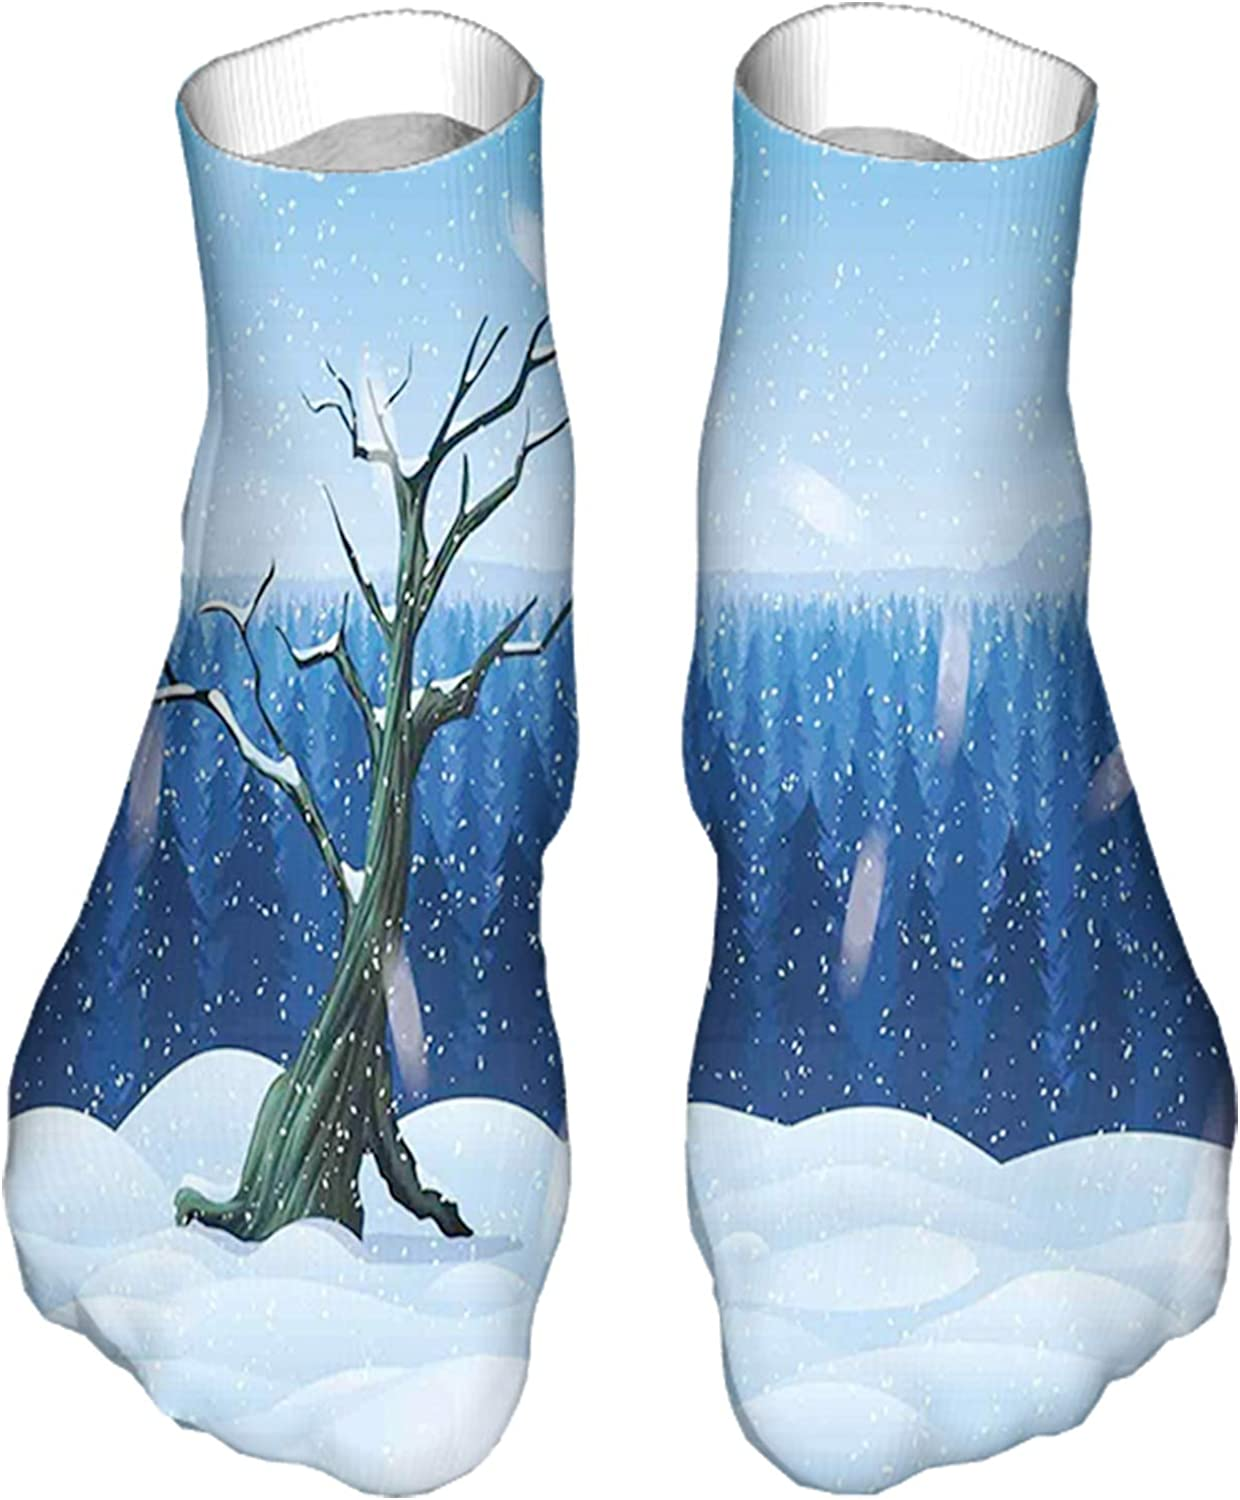 Women's Colorful Patterned Unisex Low Cut/No Show Socks,Cold Snowy Landscape with Deep Winter Forest Hillside